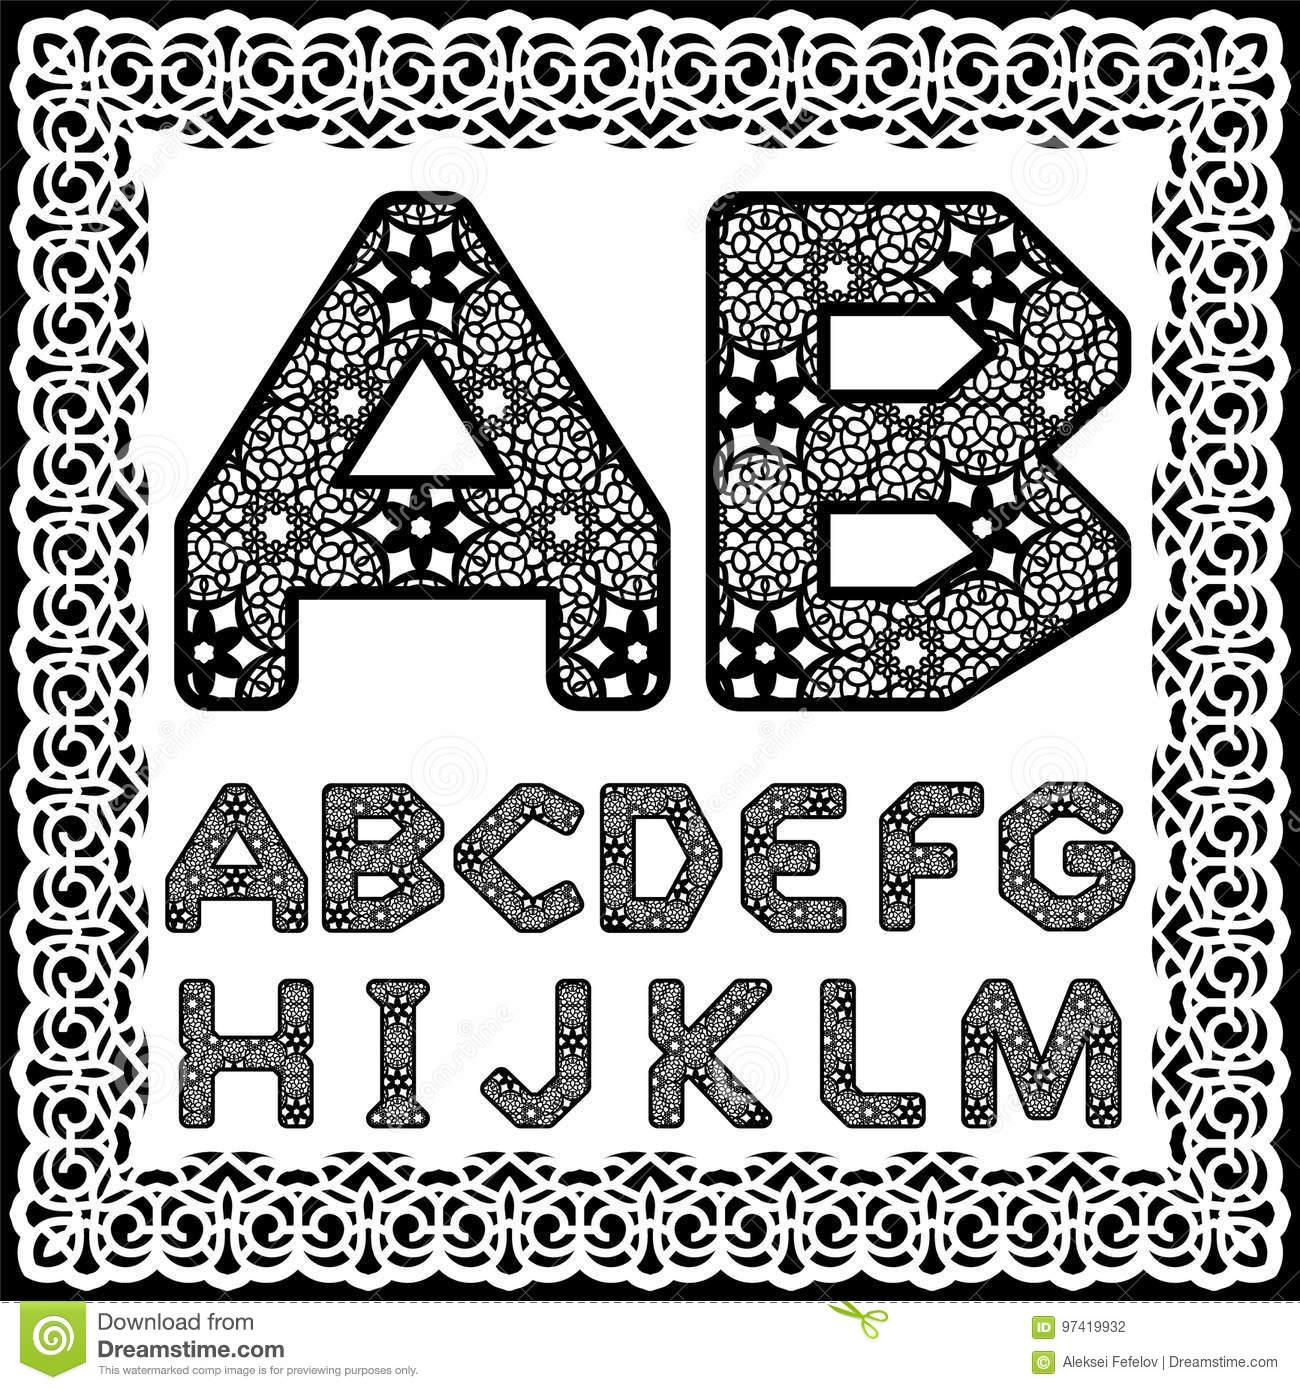 templates for cutting out letters. full english alphabet. may be